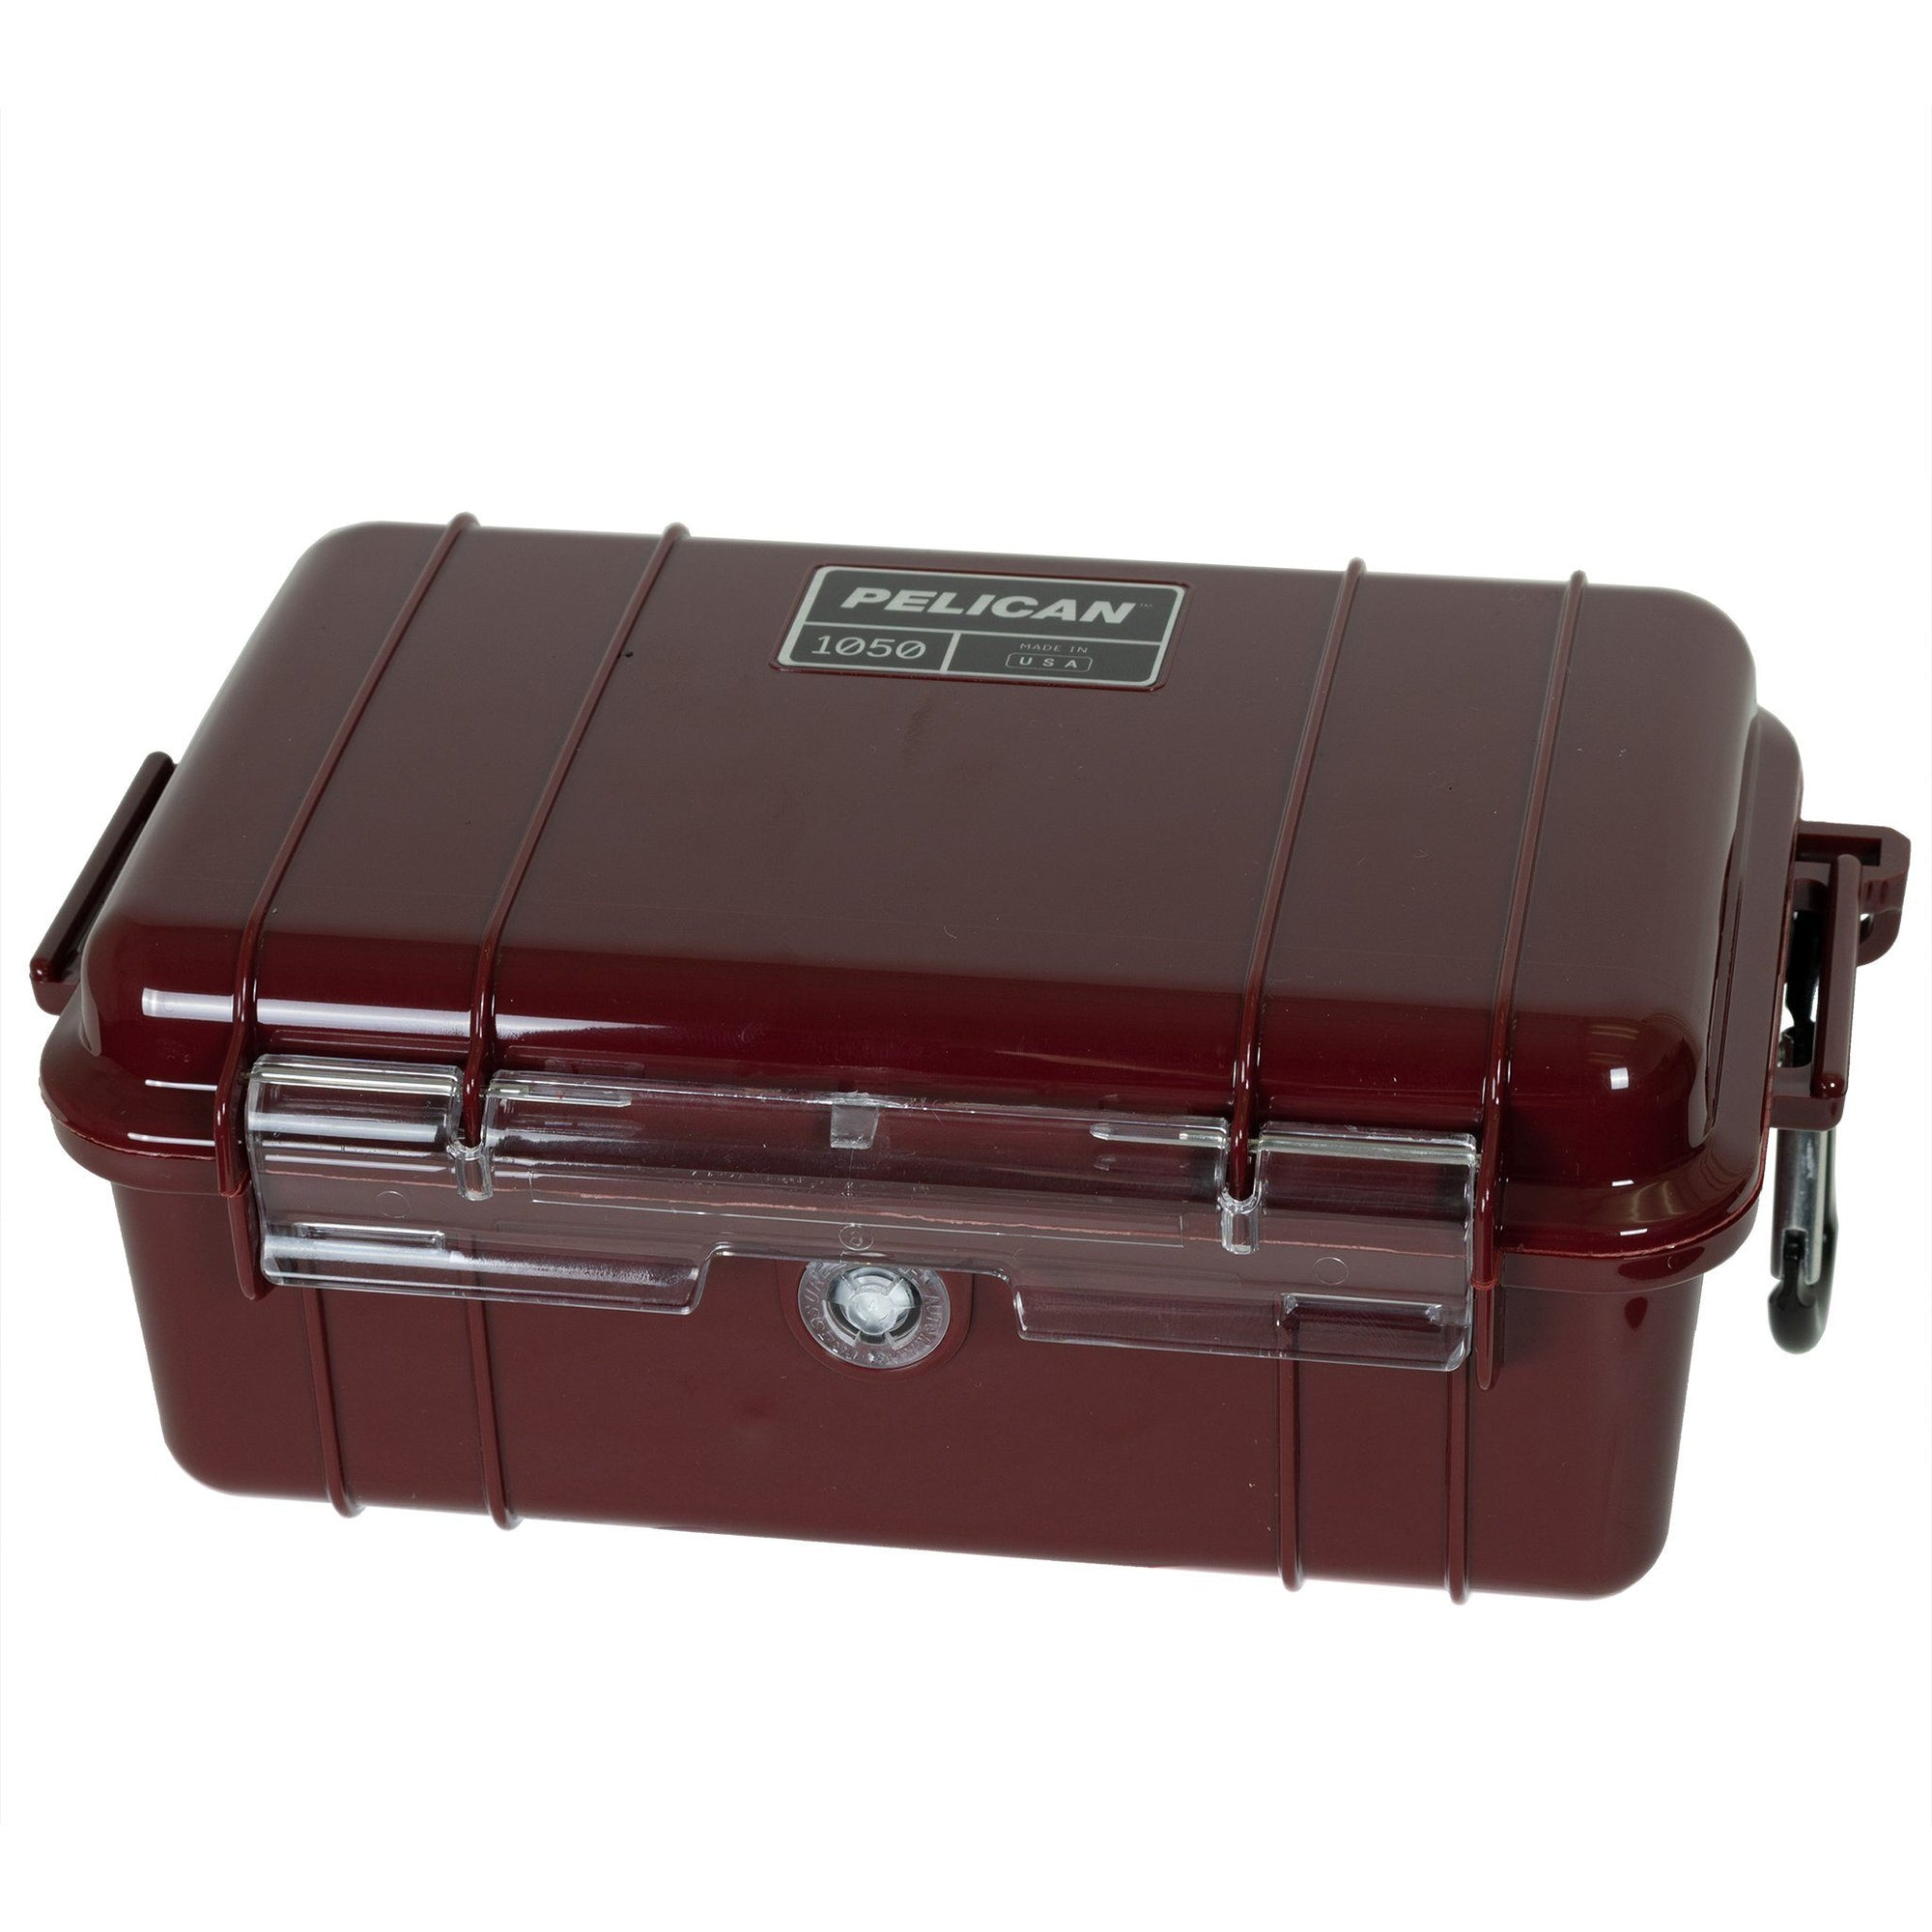 Pelican 1050 Case, OxBlood